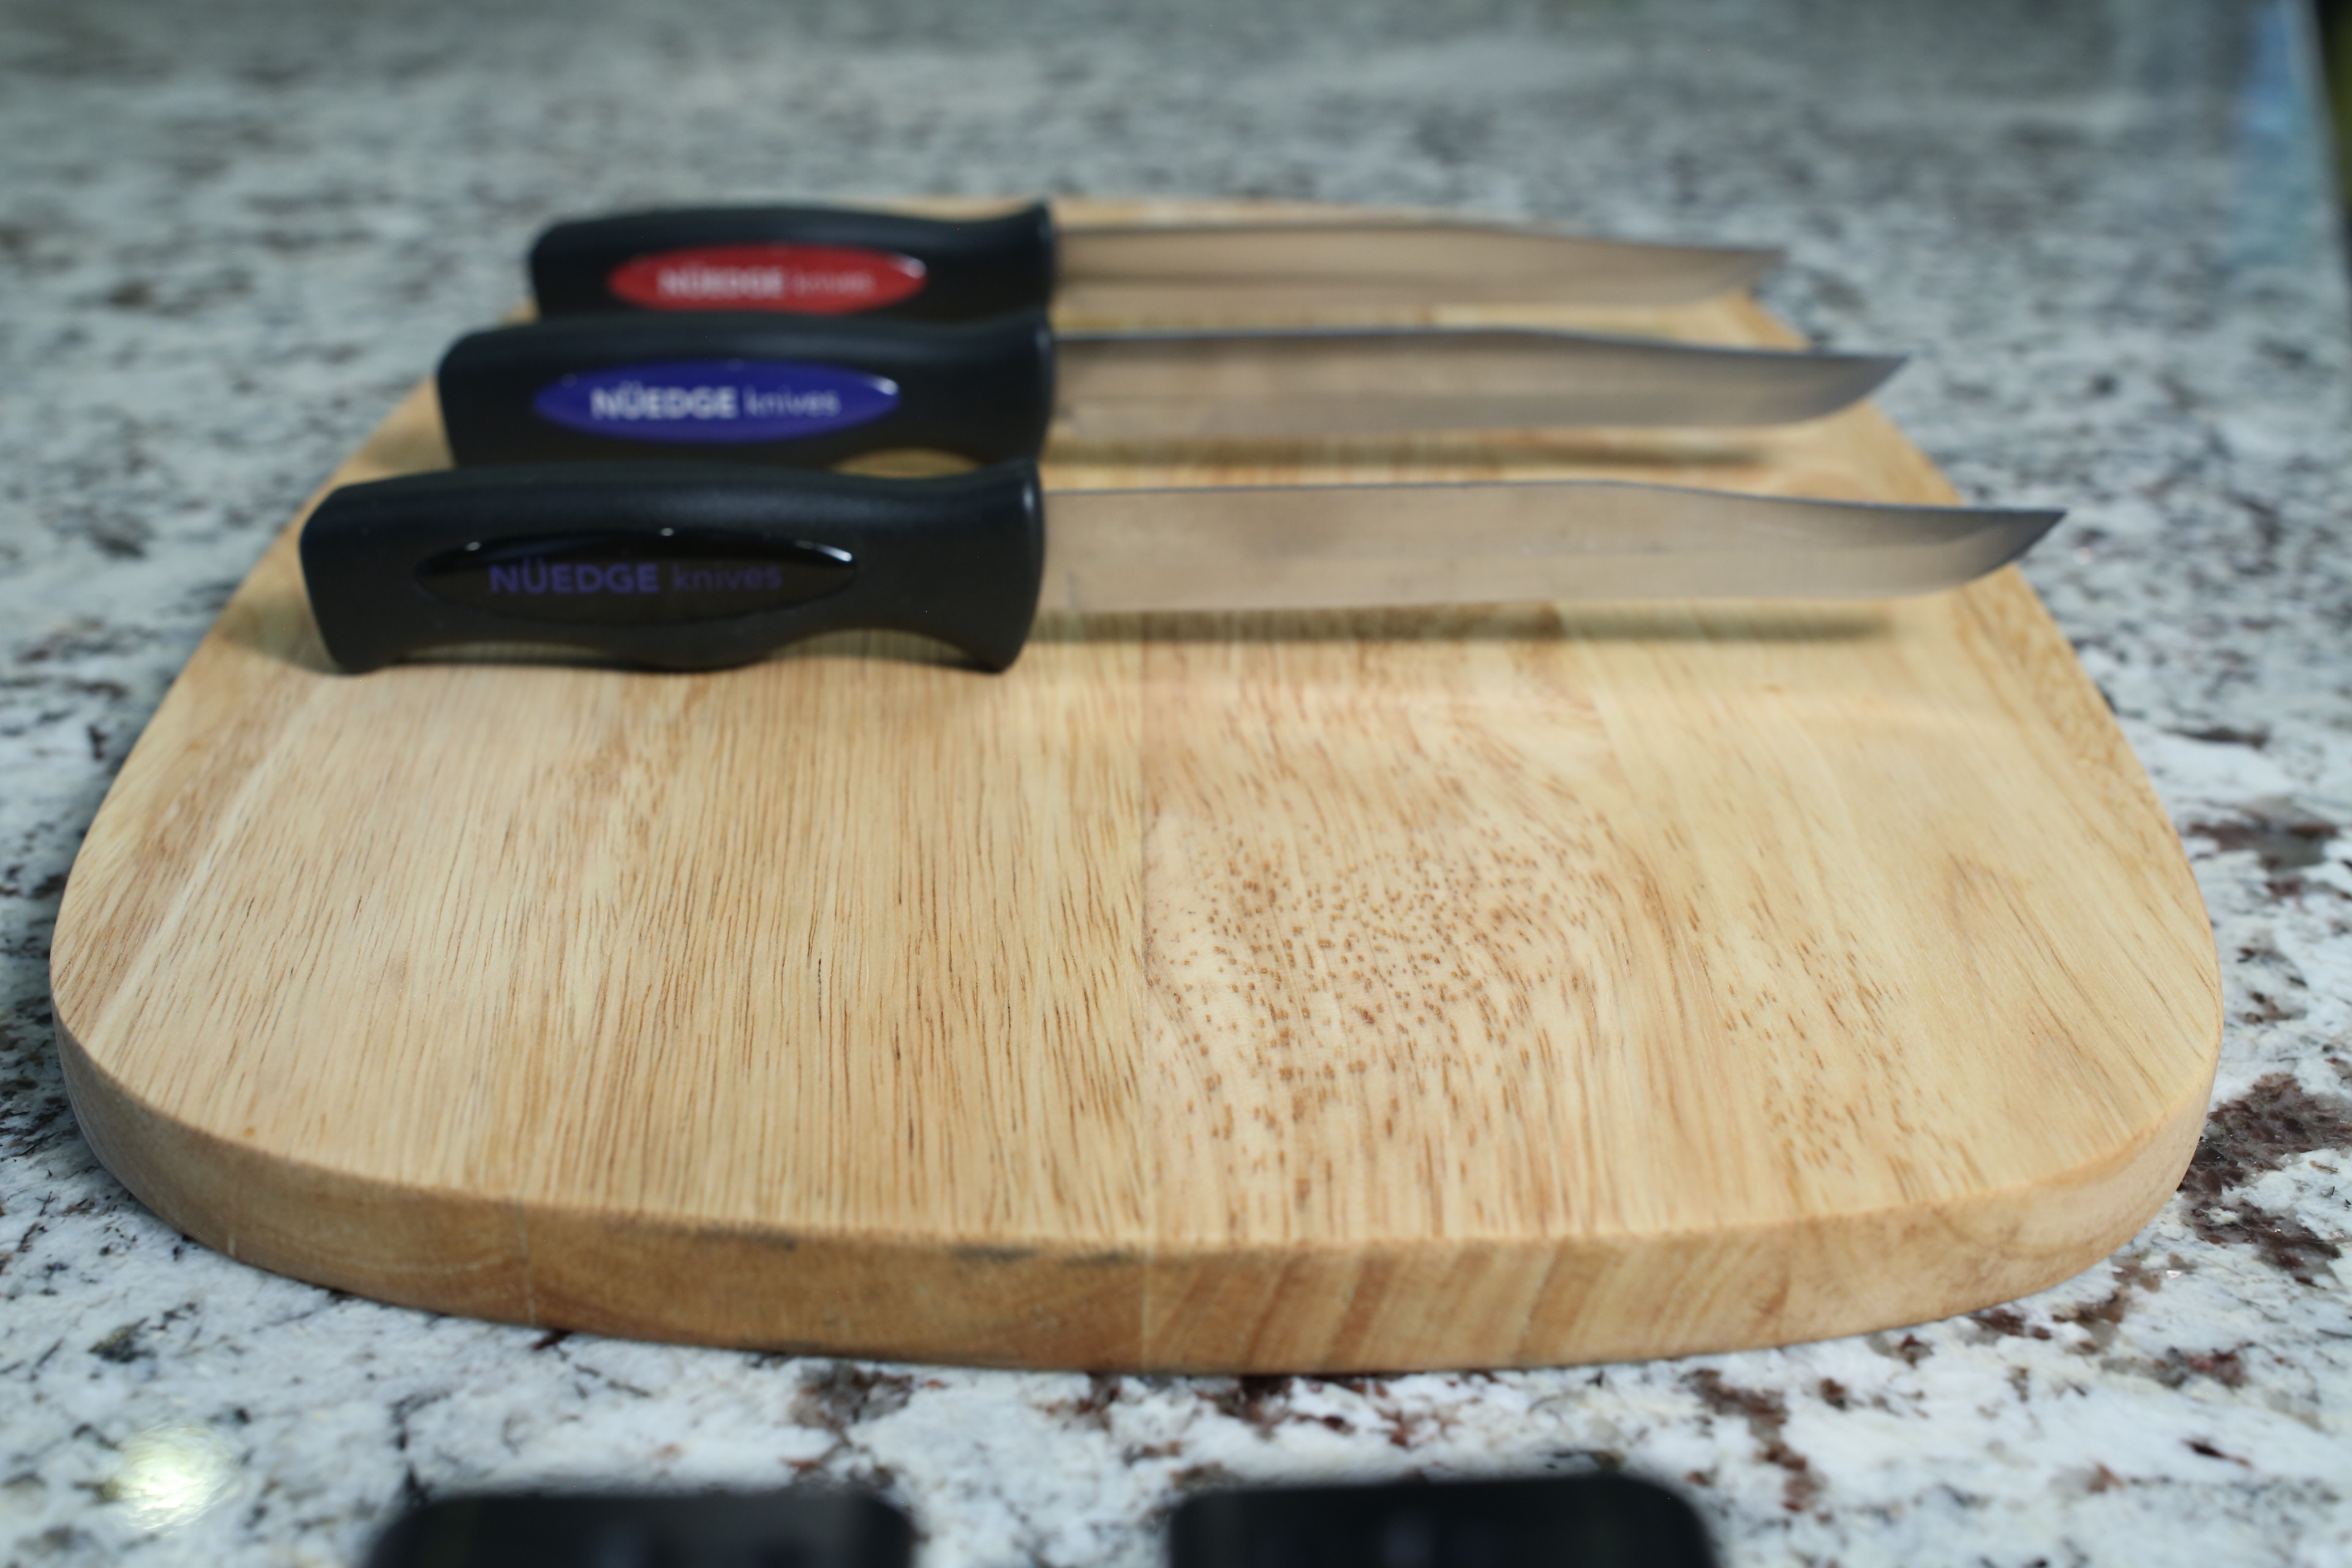 NUEDGE Knives image 3